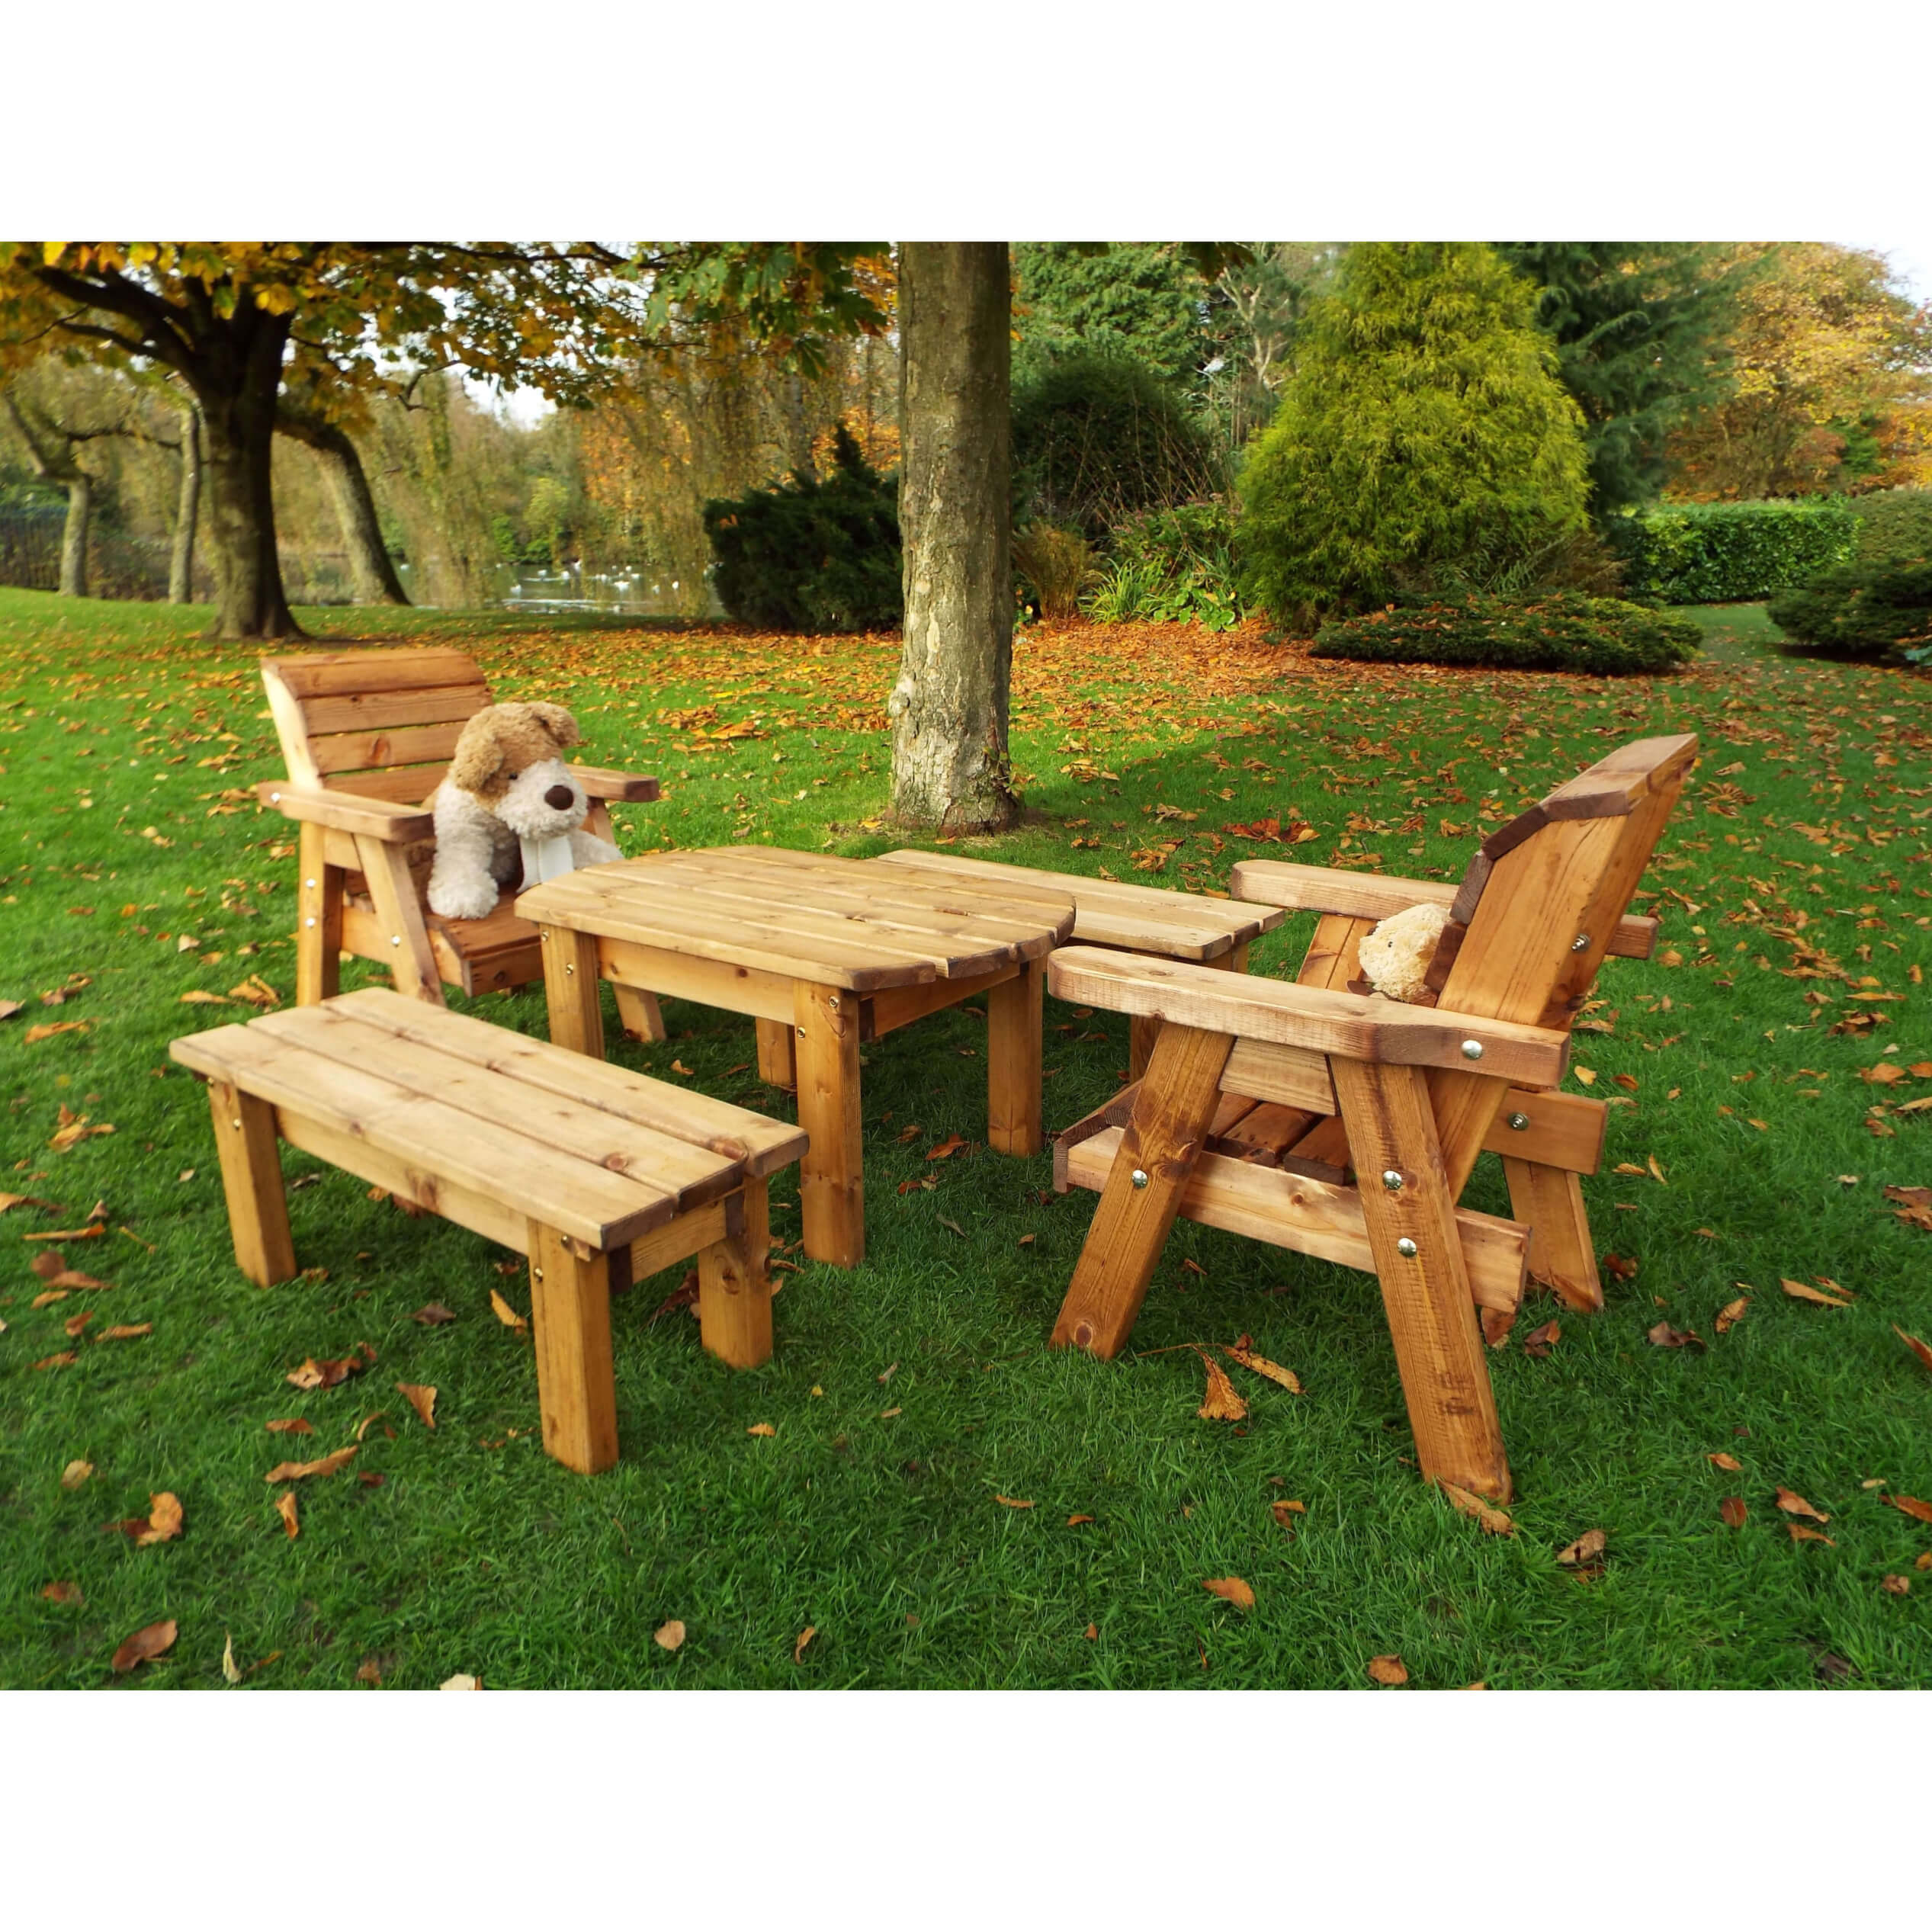 Childrens 6 Seater Wooden Outdoor Bench And Chairs Set Solid Patio Kids Furniture